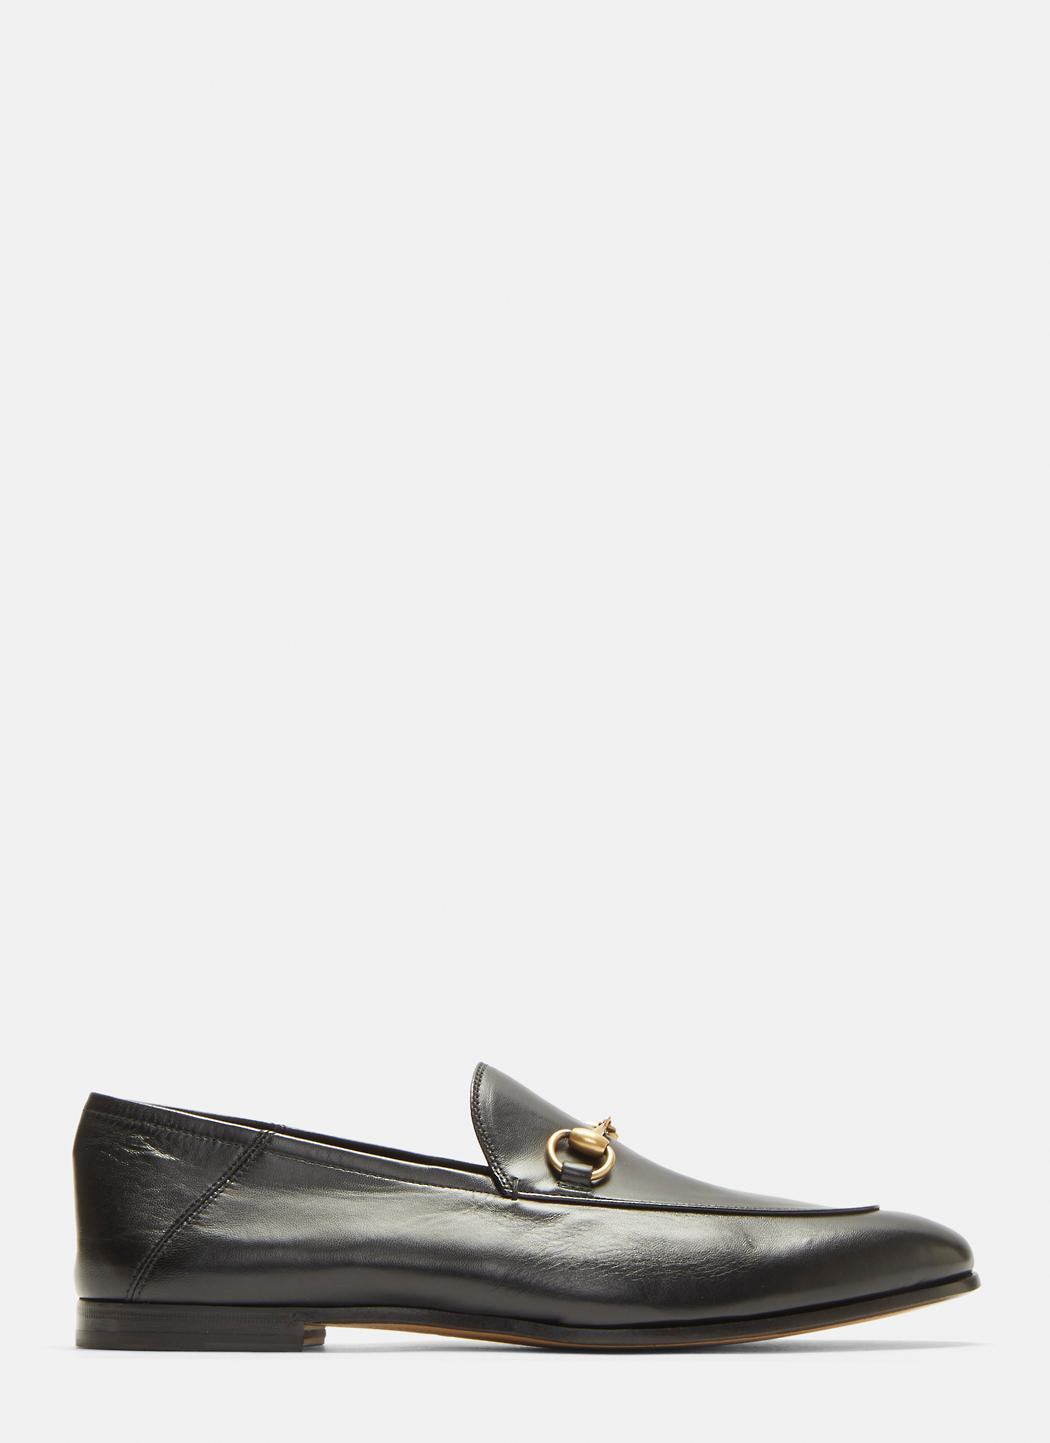 bed2634e684 Lyst - Gucci Brixton Leather Loafers In Black in Black for Men